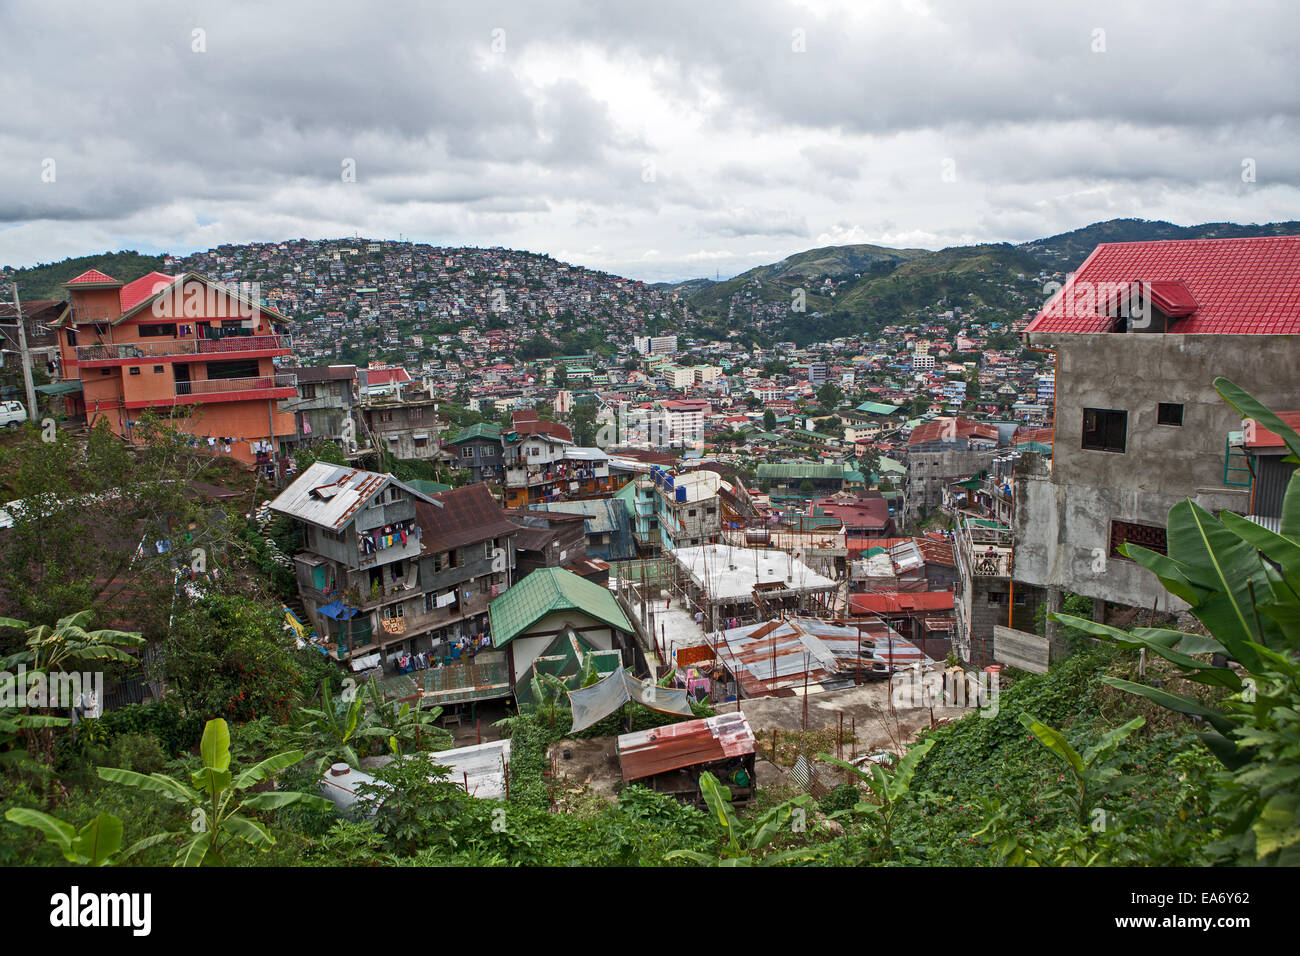 Severe congestion, overbuilding and crowding on one of the mountainsides in Baguio City, Northern Luzon Island, - Stock Image